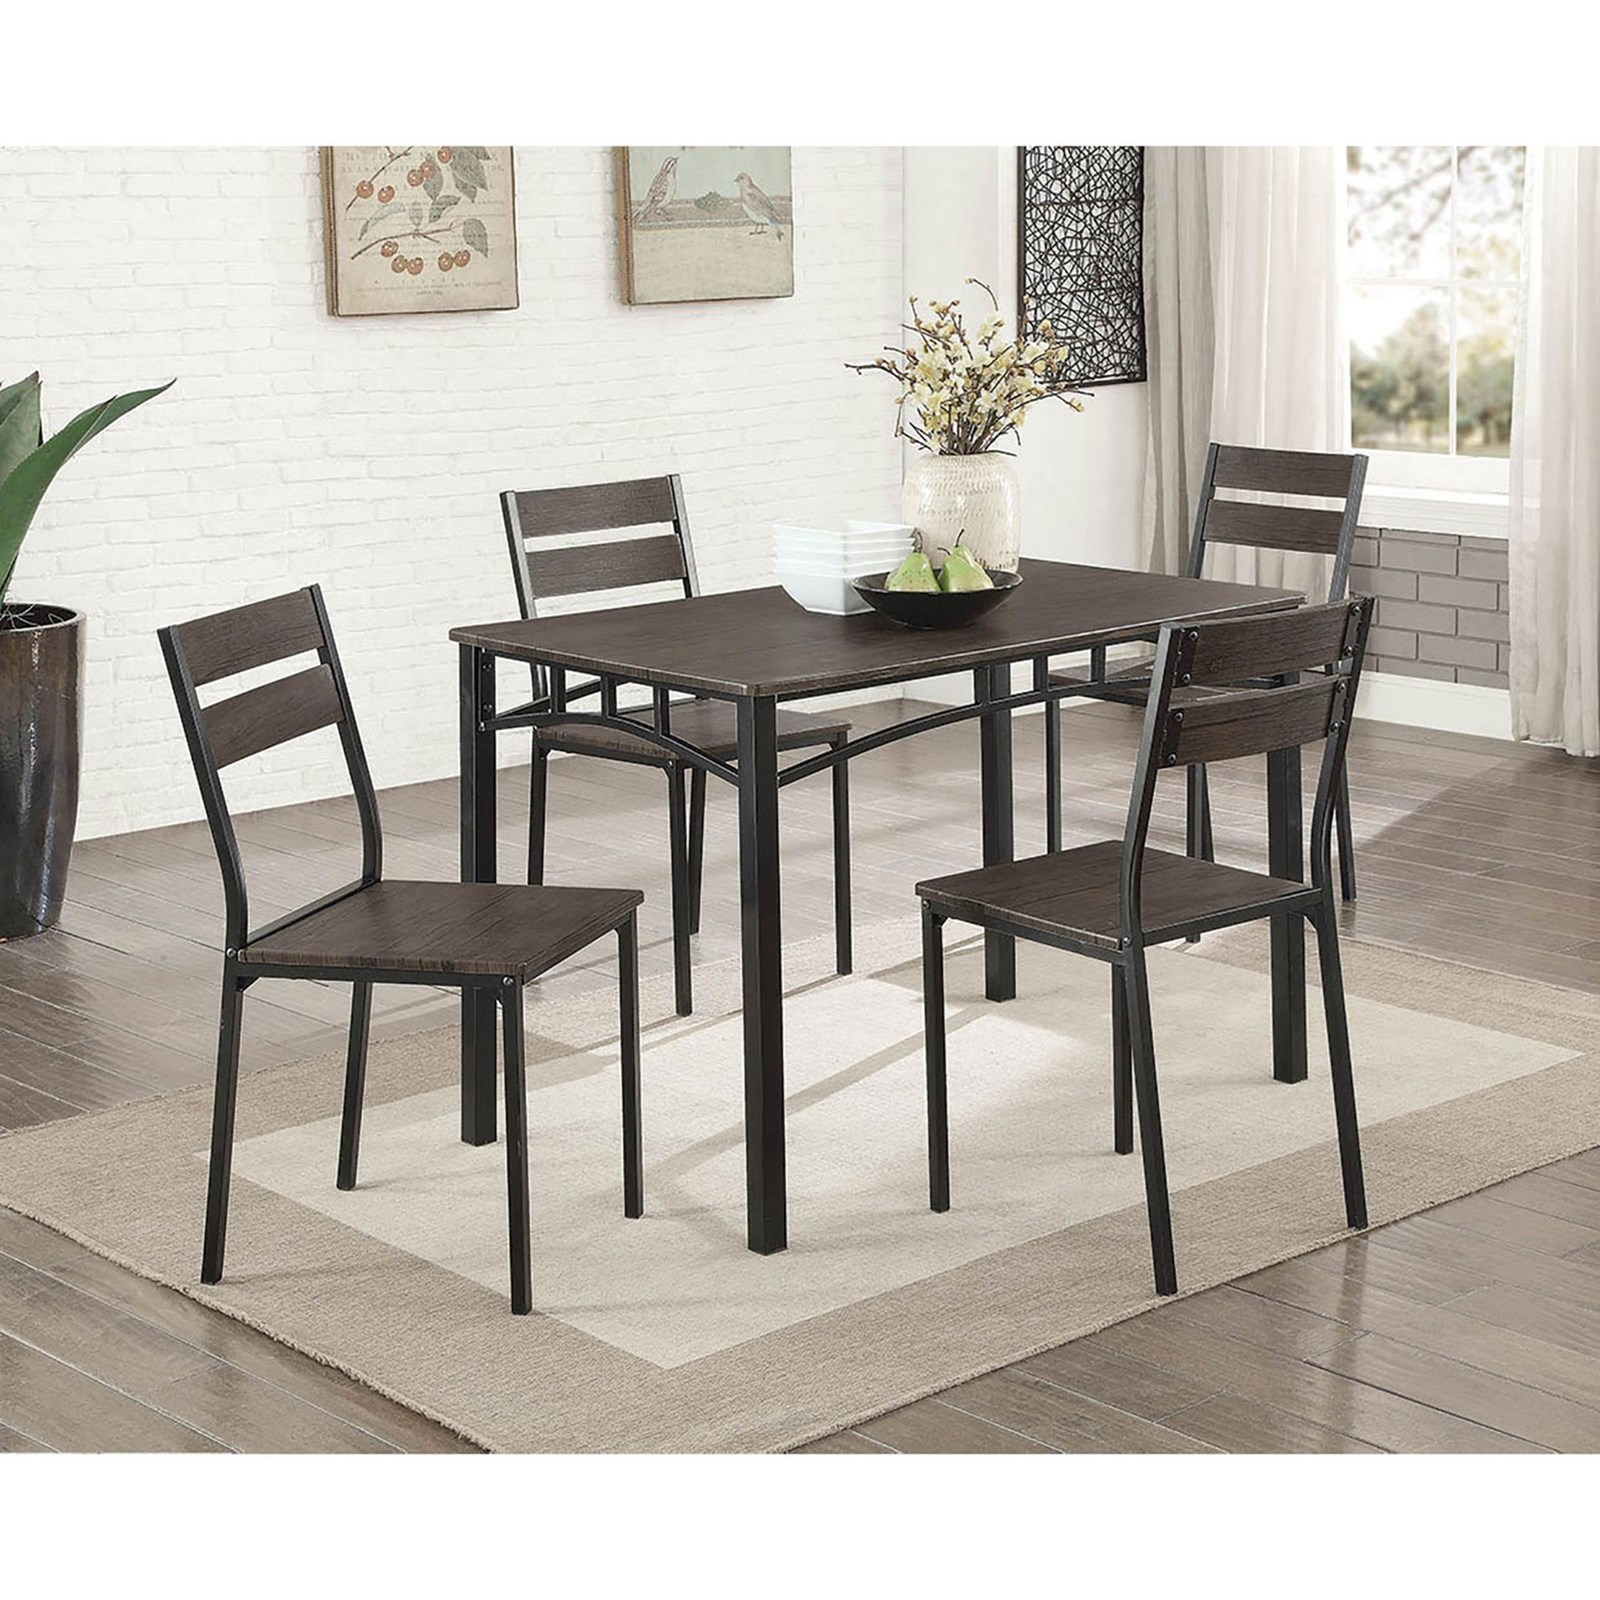 Furniture Of America Westport Contemporary 5-Piece Dining